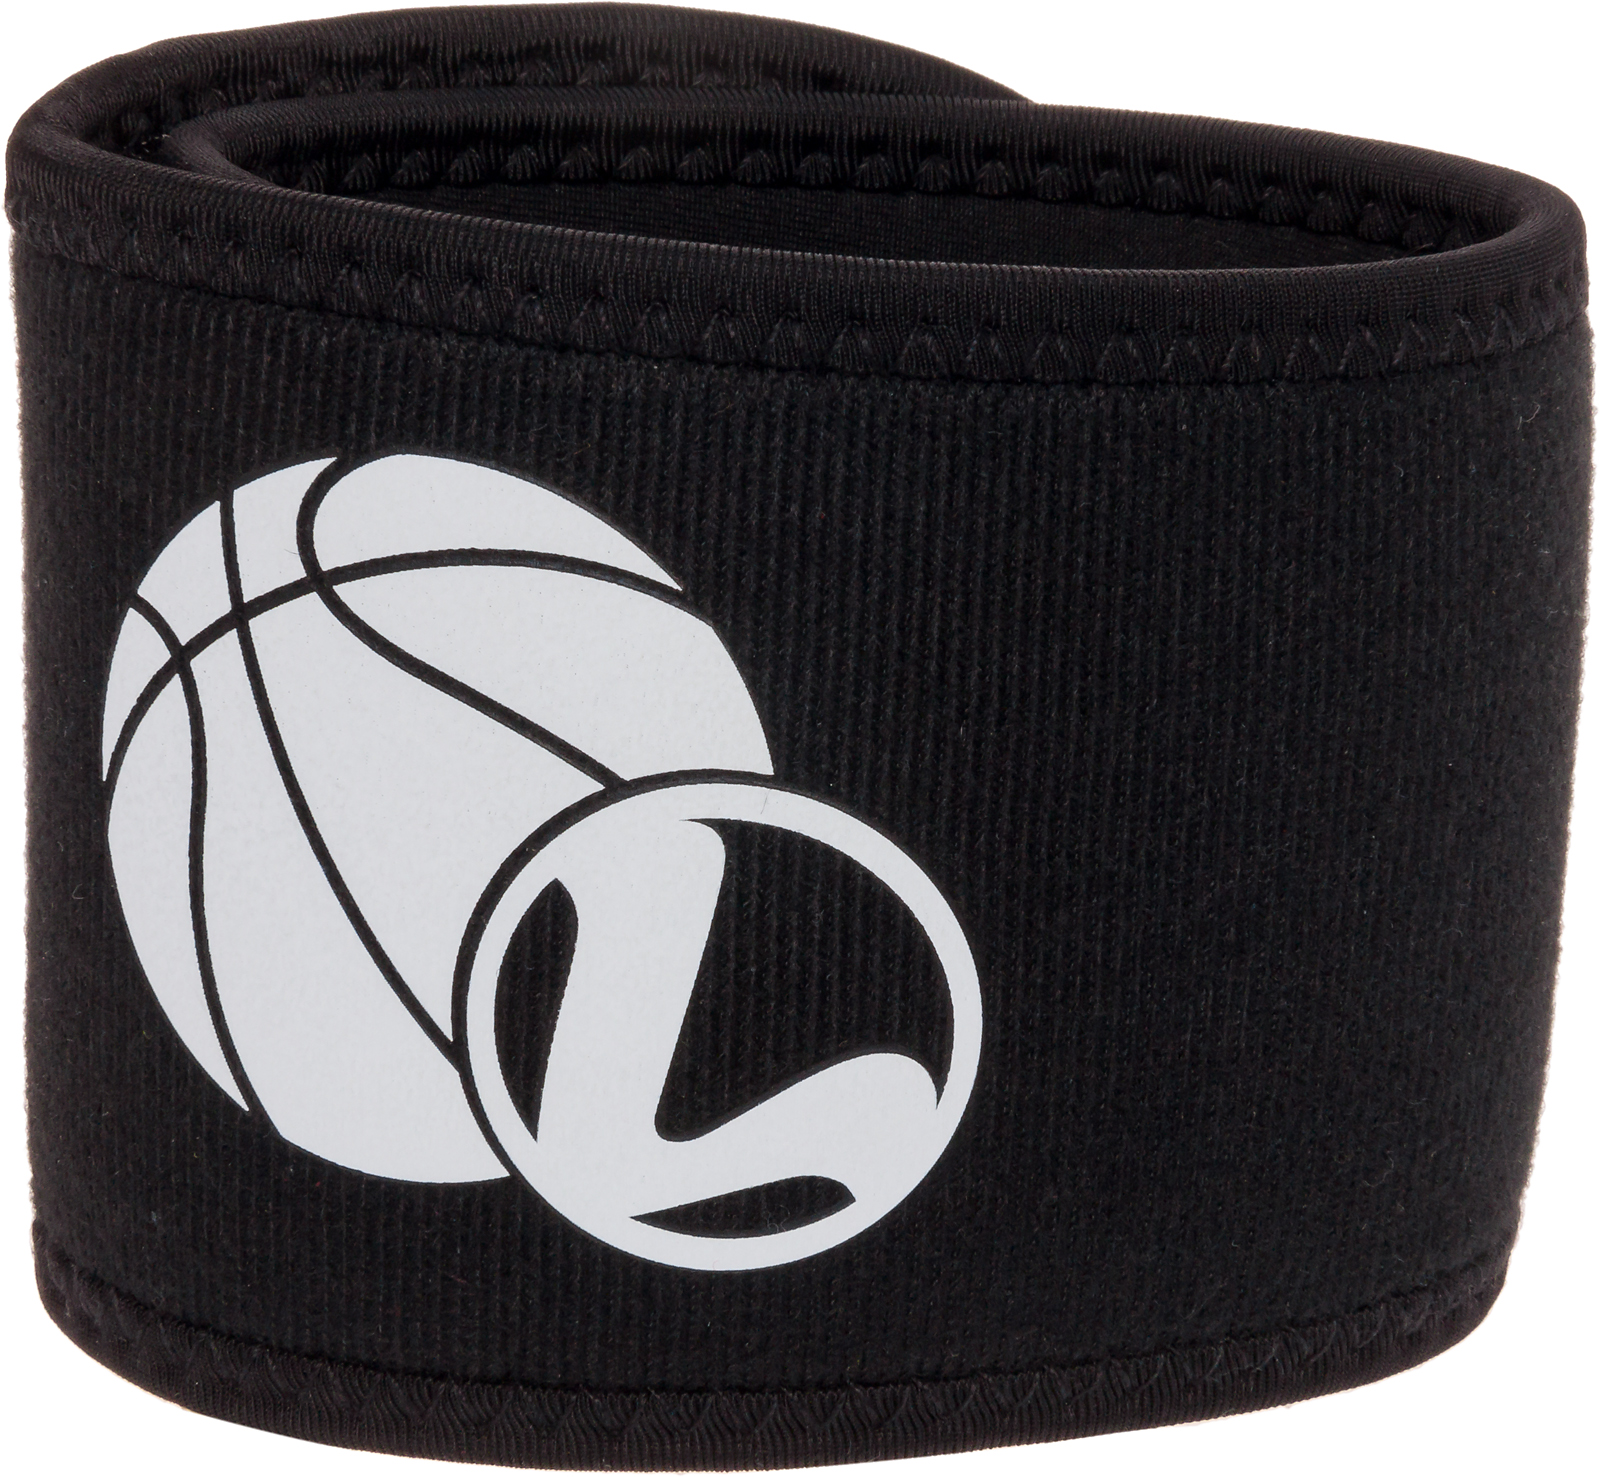 LISH Basketball Shooting Training Aid Wrap for Better Jumpshots, Layups